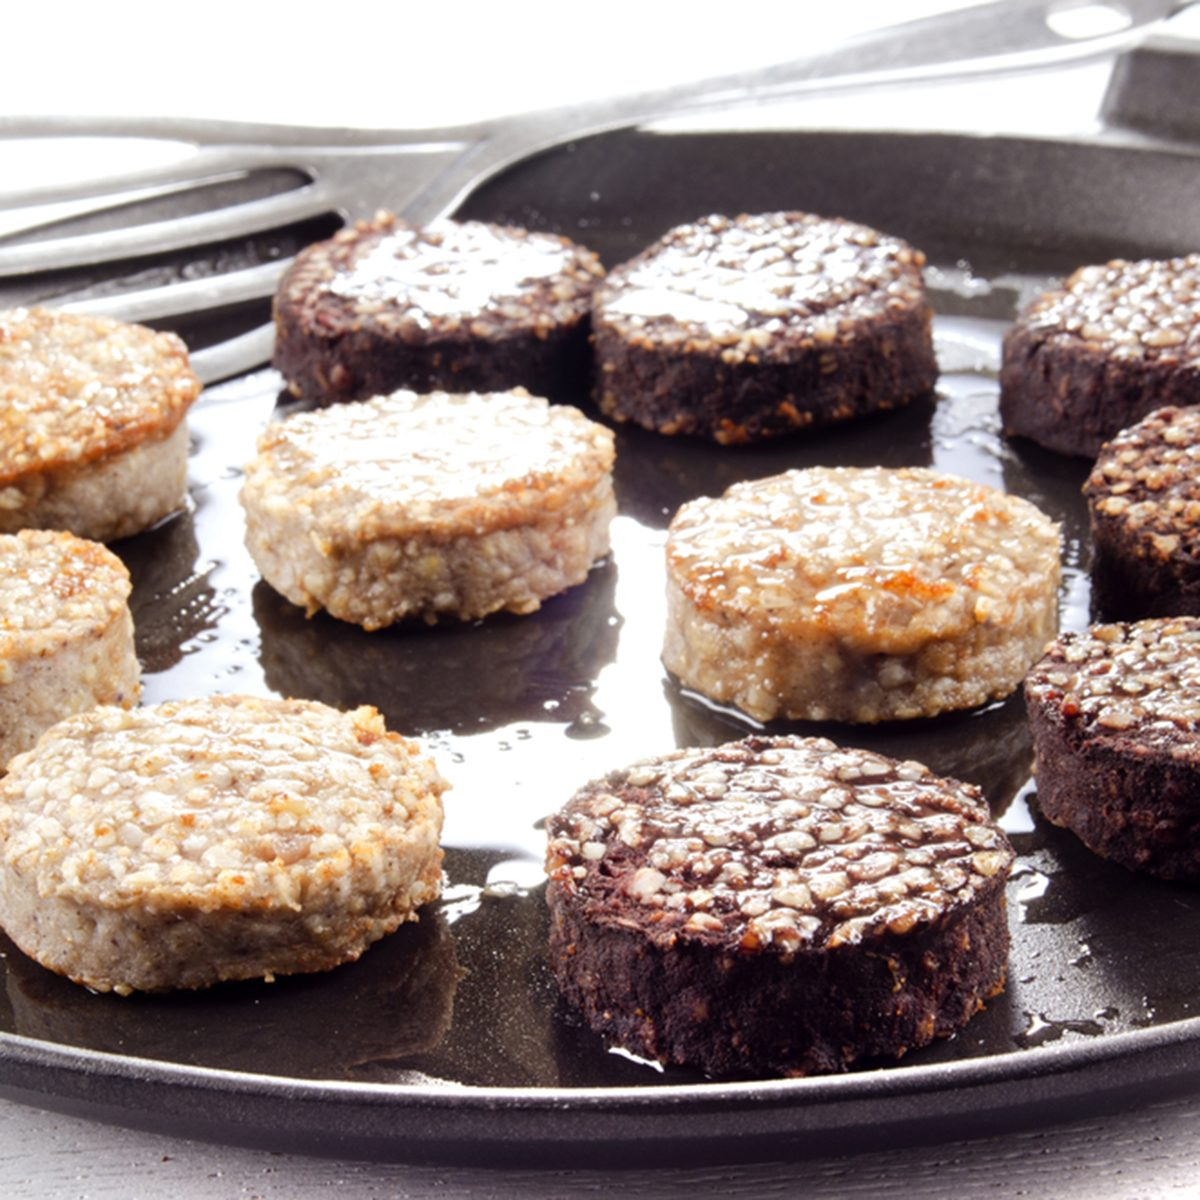 white and black pudding on a pan; Shutterstock ID 149291570